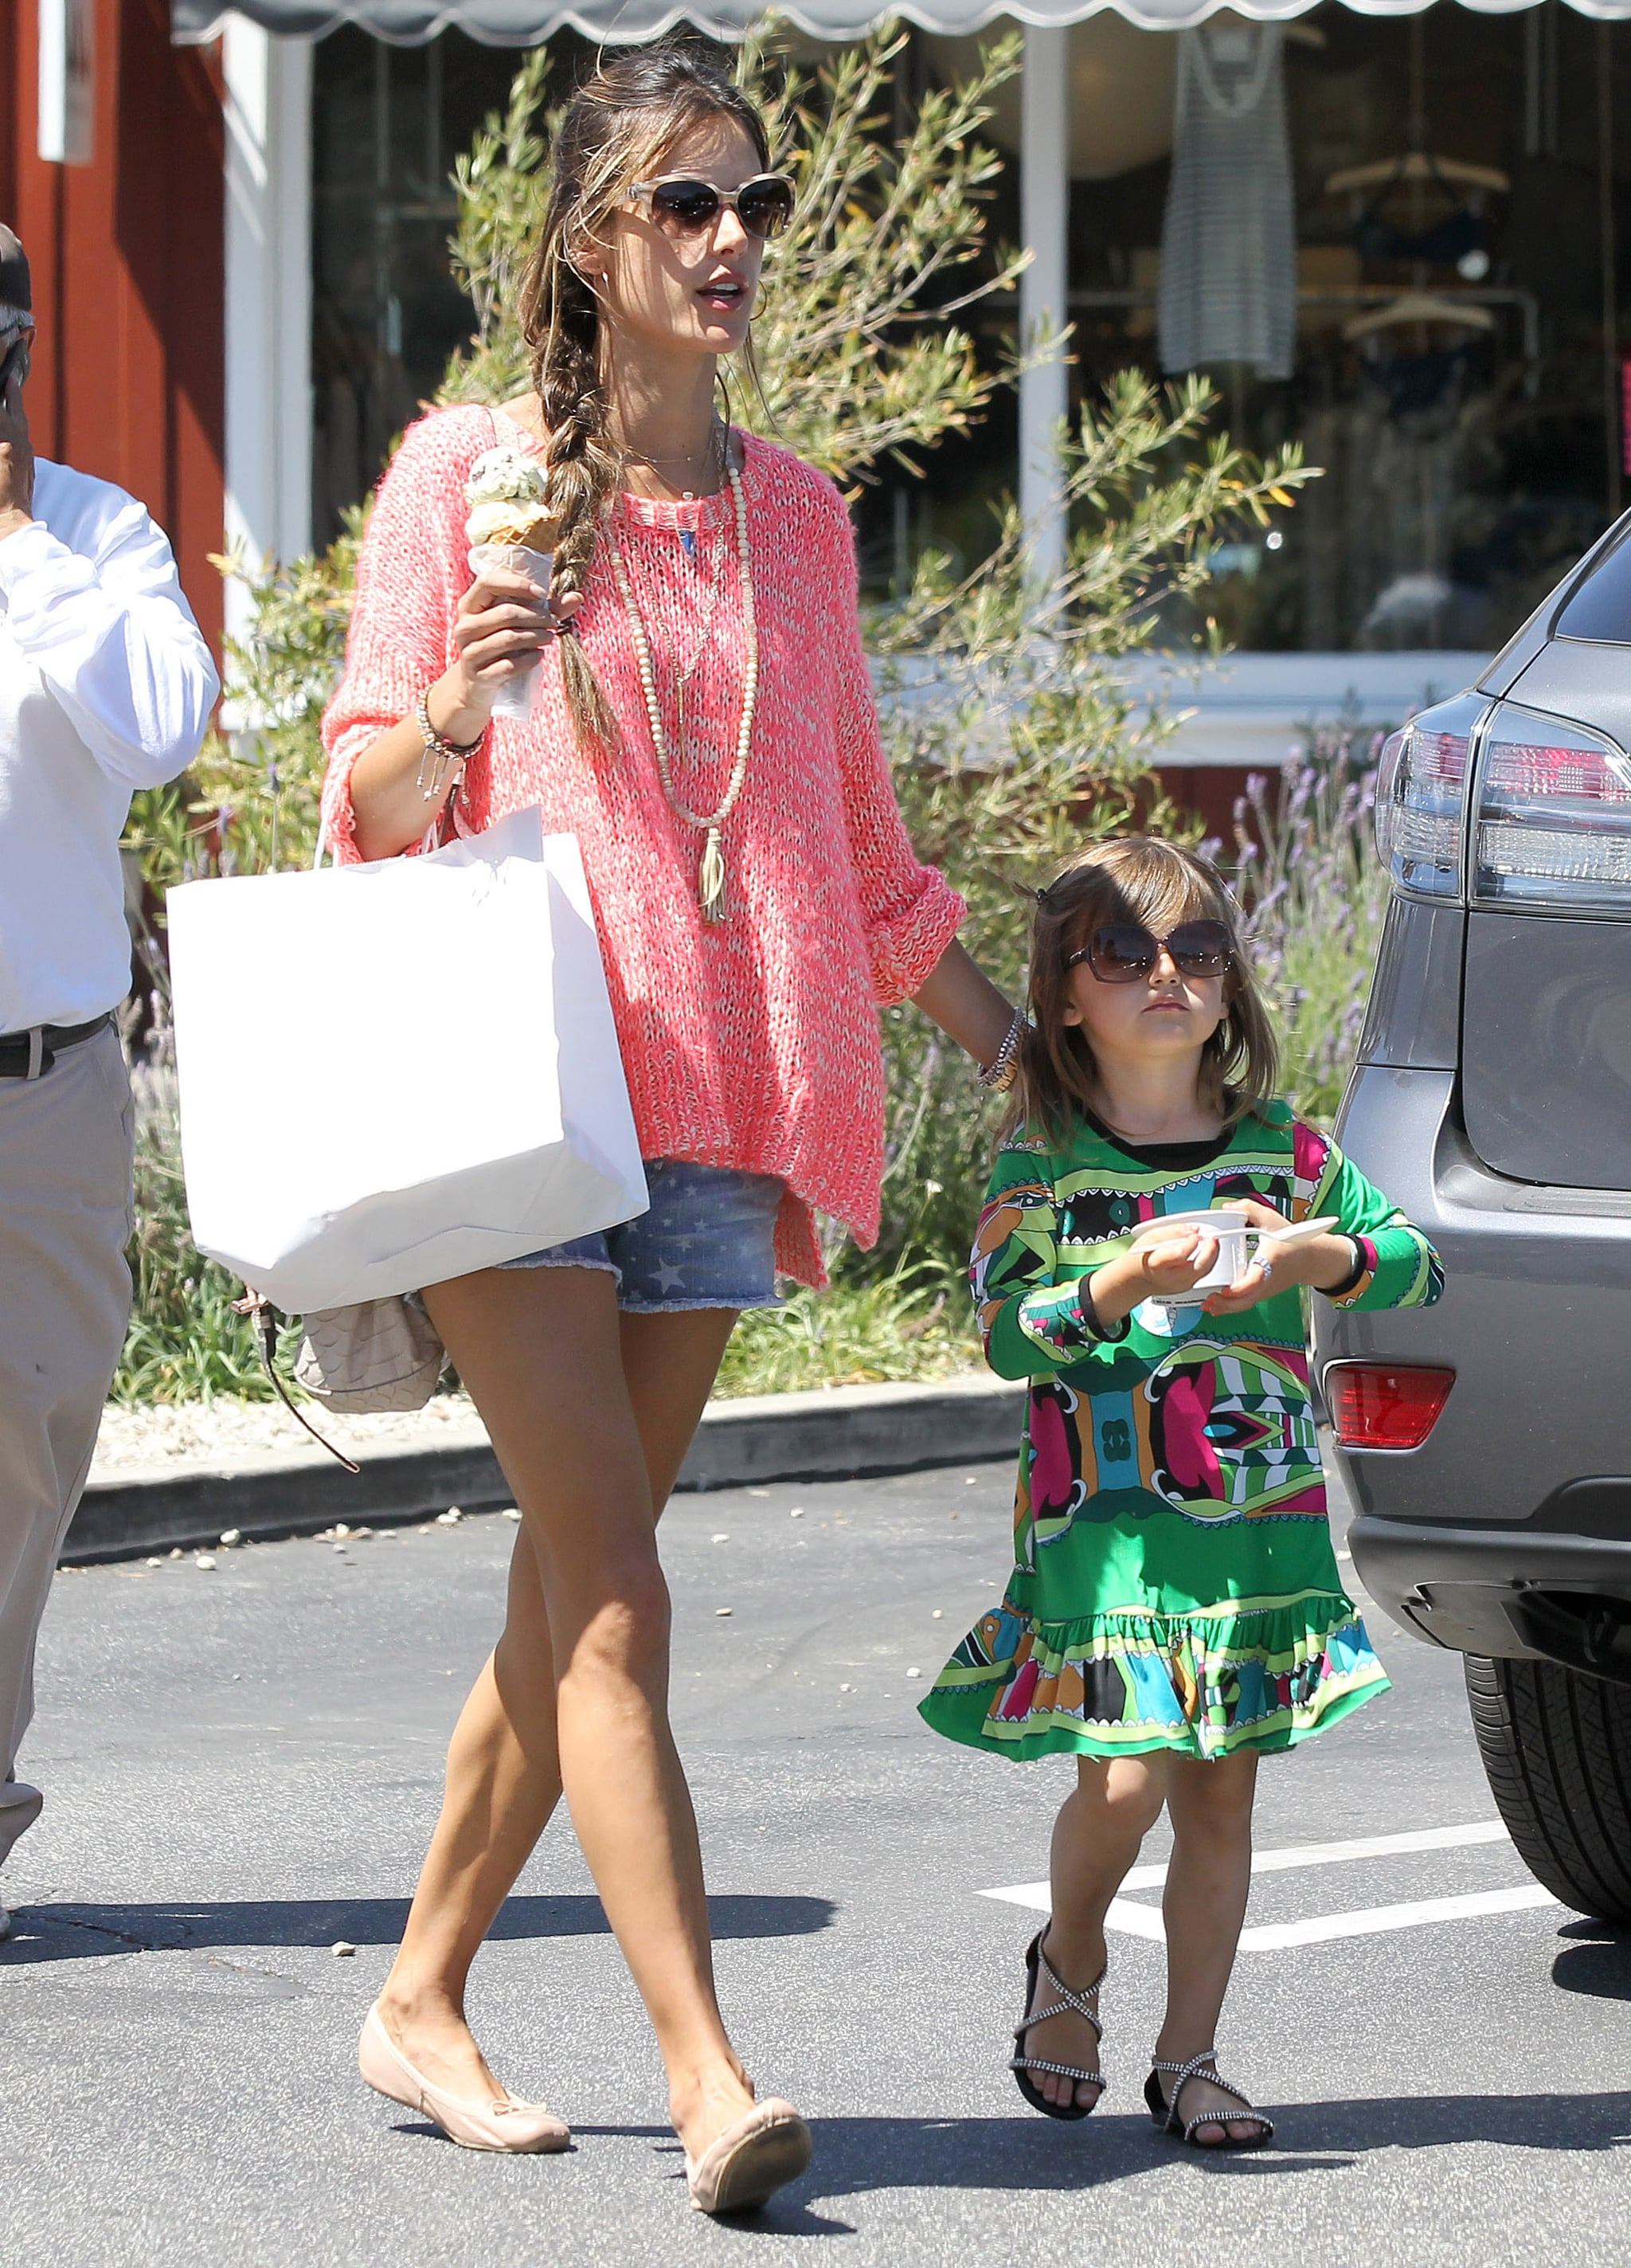 Alessandra Ambrosio created a fun ensemble with a bright pink sweater and Big Star USA star-print denim shorts while grabbing ice cream with her daughter Anja in LA.